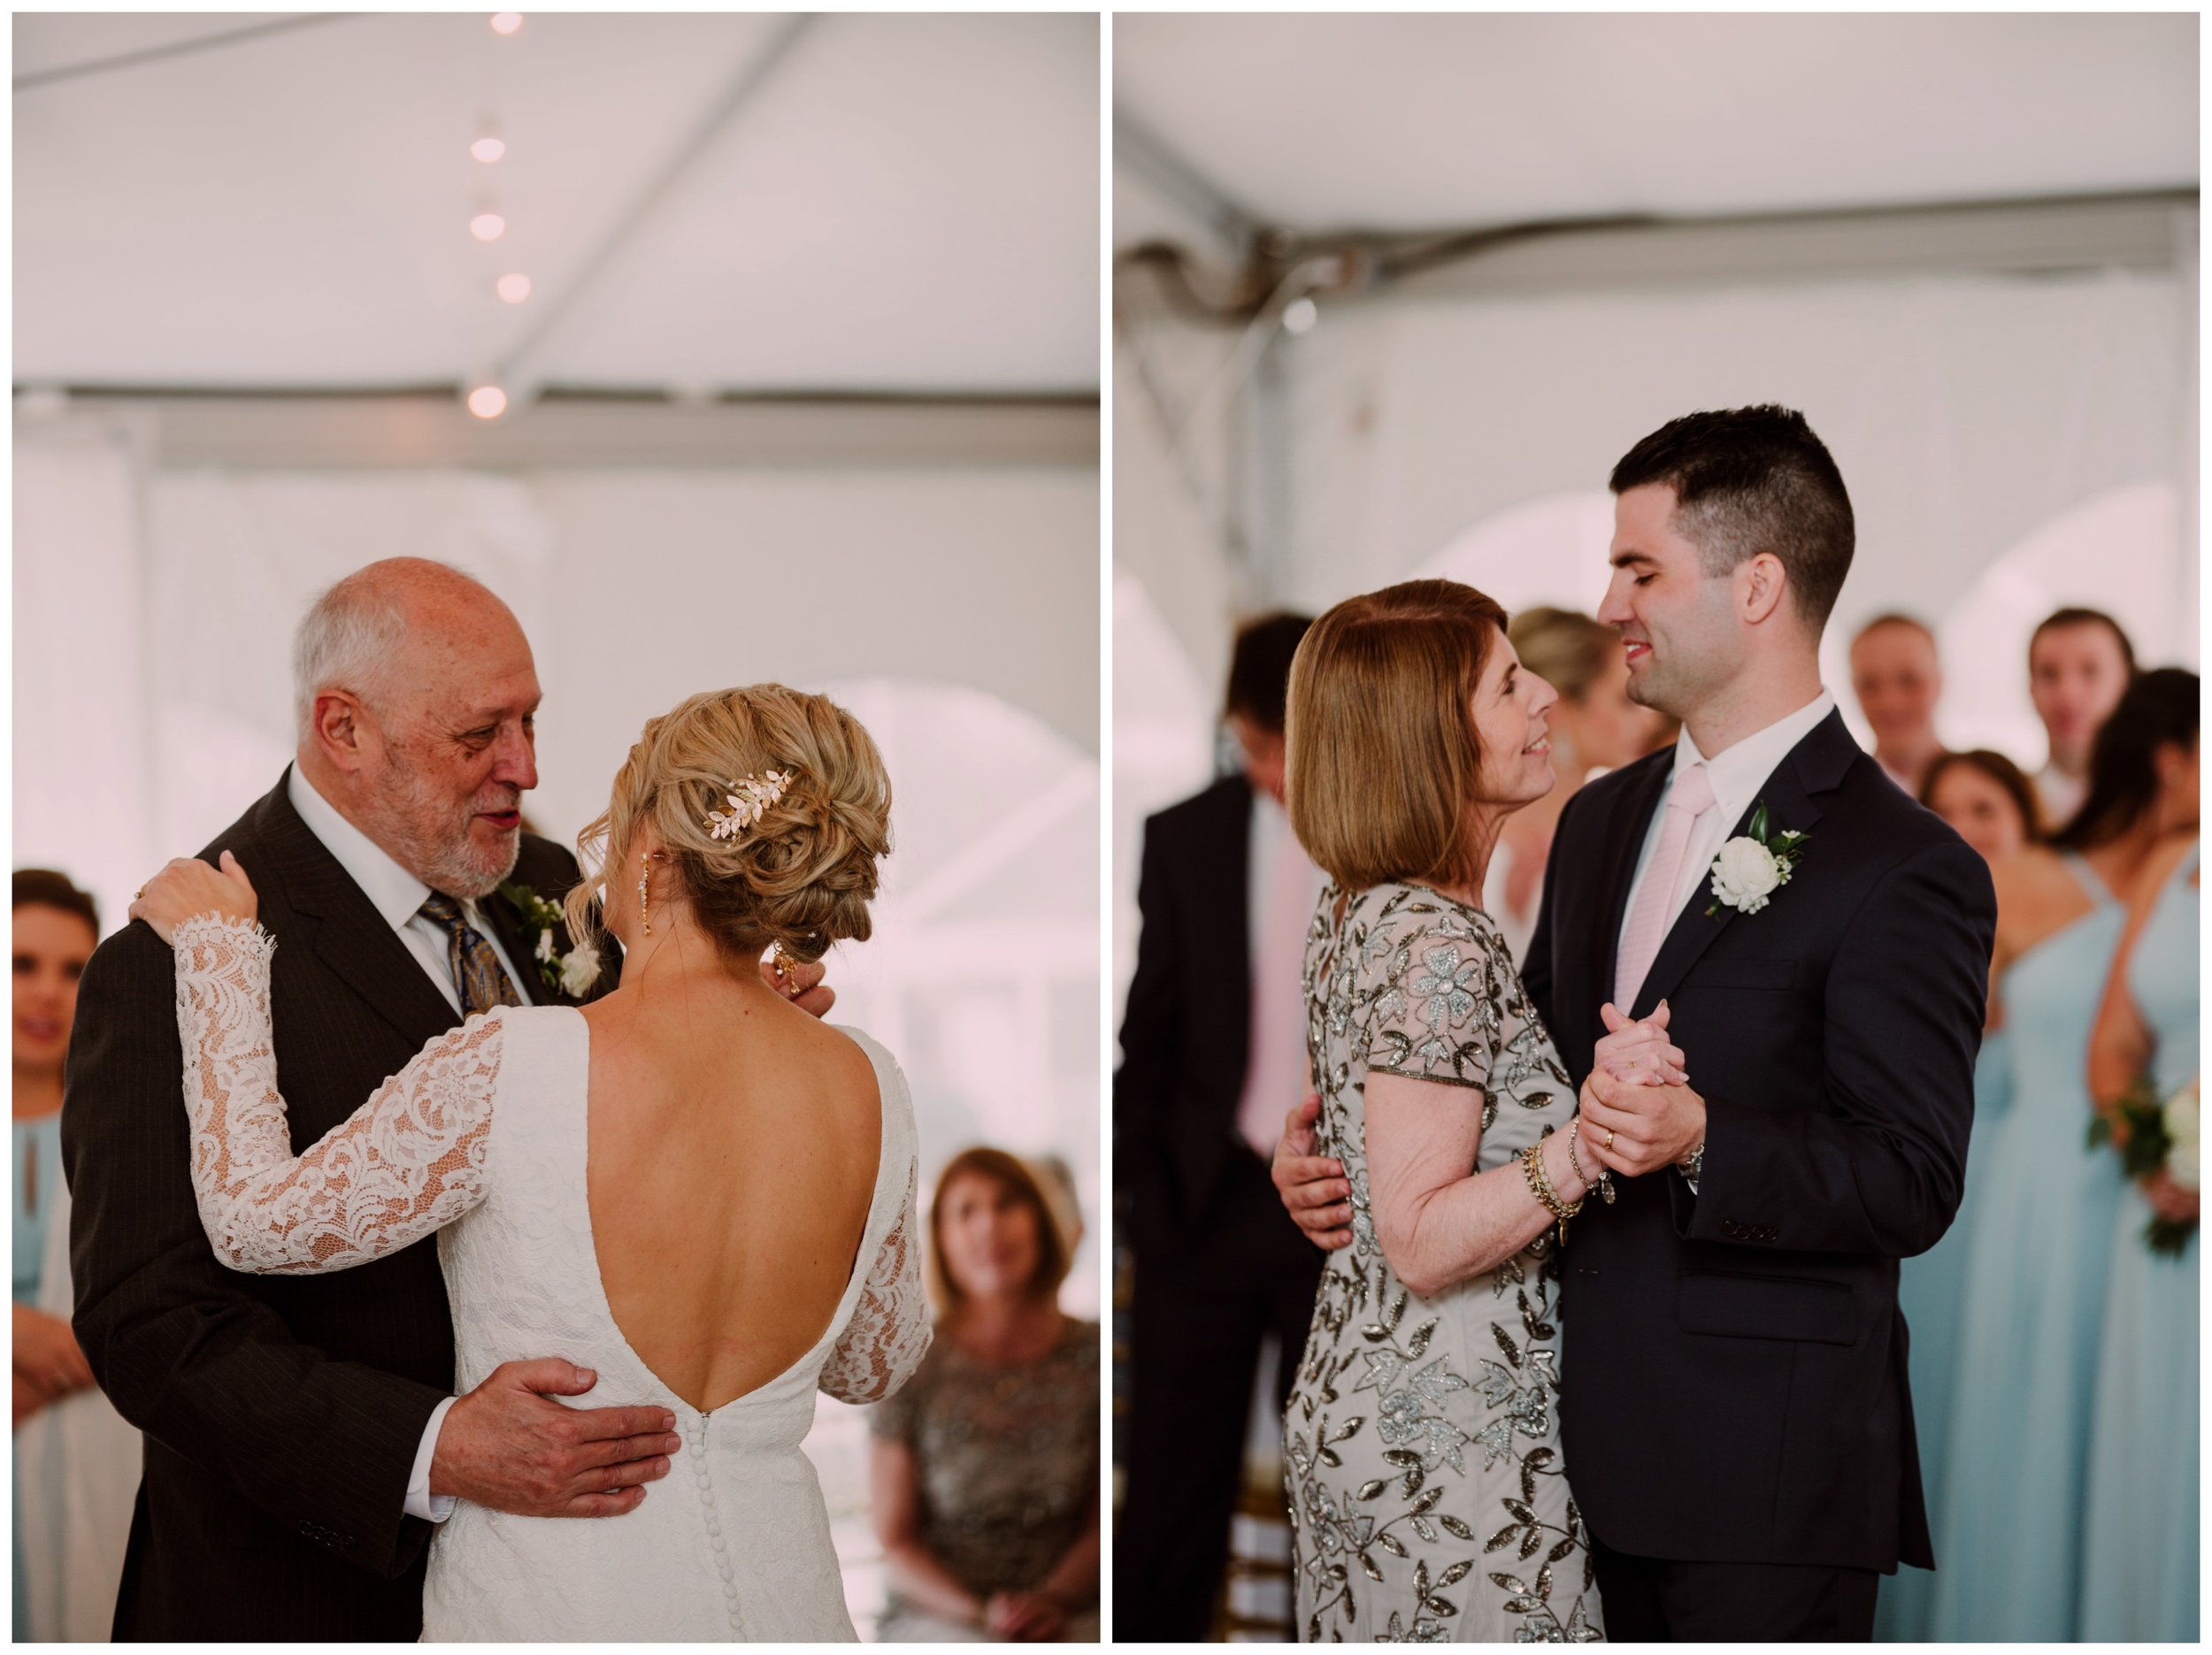 Andrea & Kyle | Traditional Virginia Rust Manor Wedding Highlights | Virginia Wedding Photographer-39.jpg